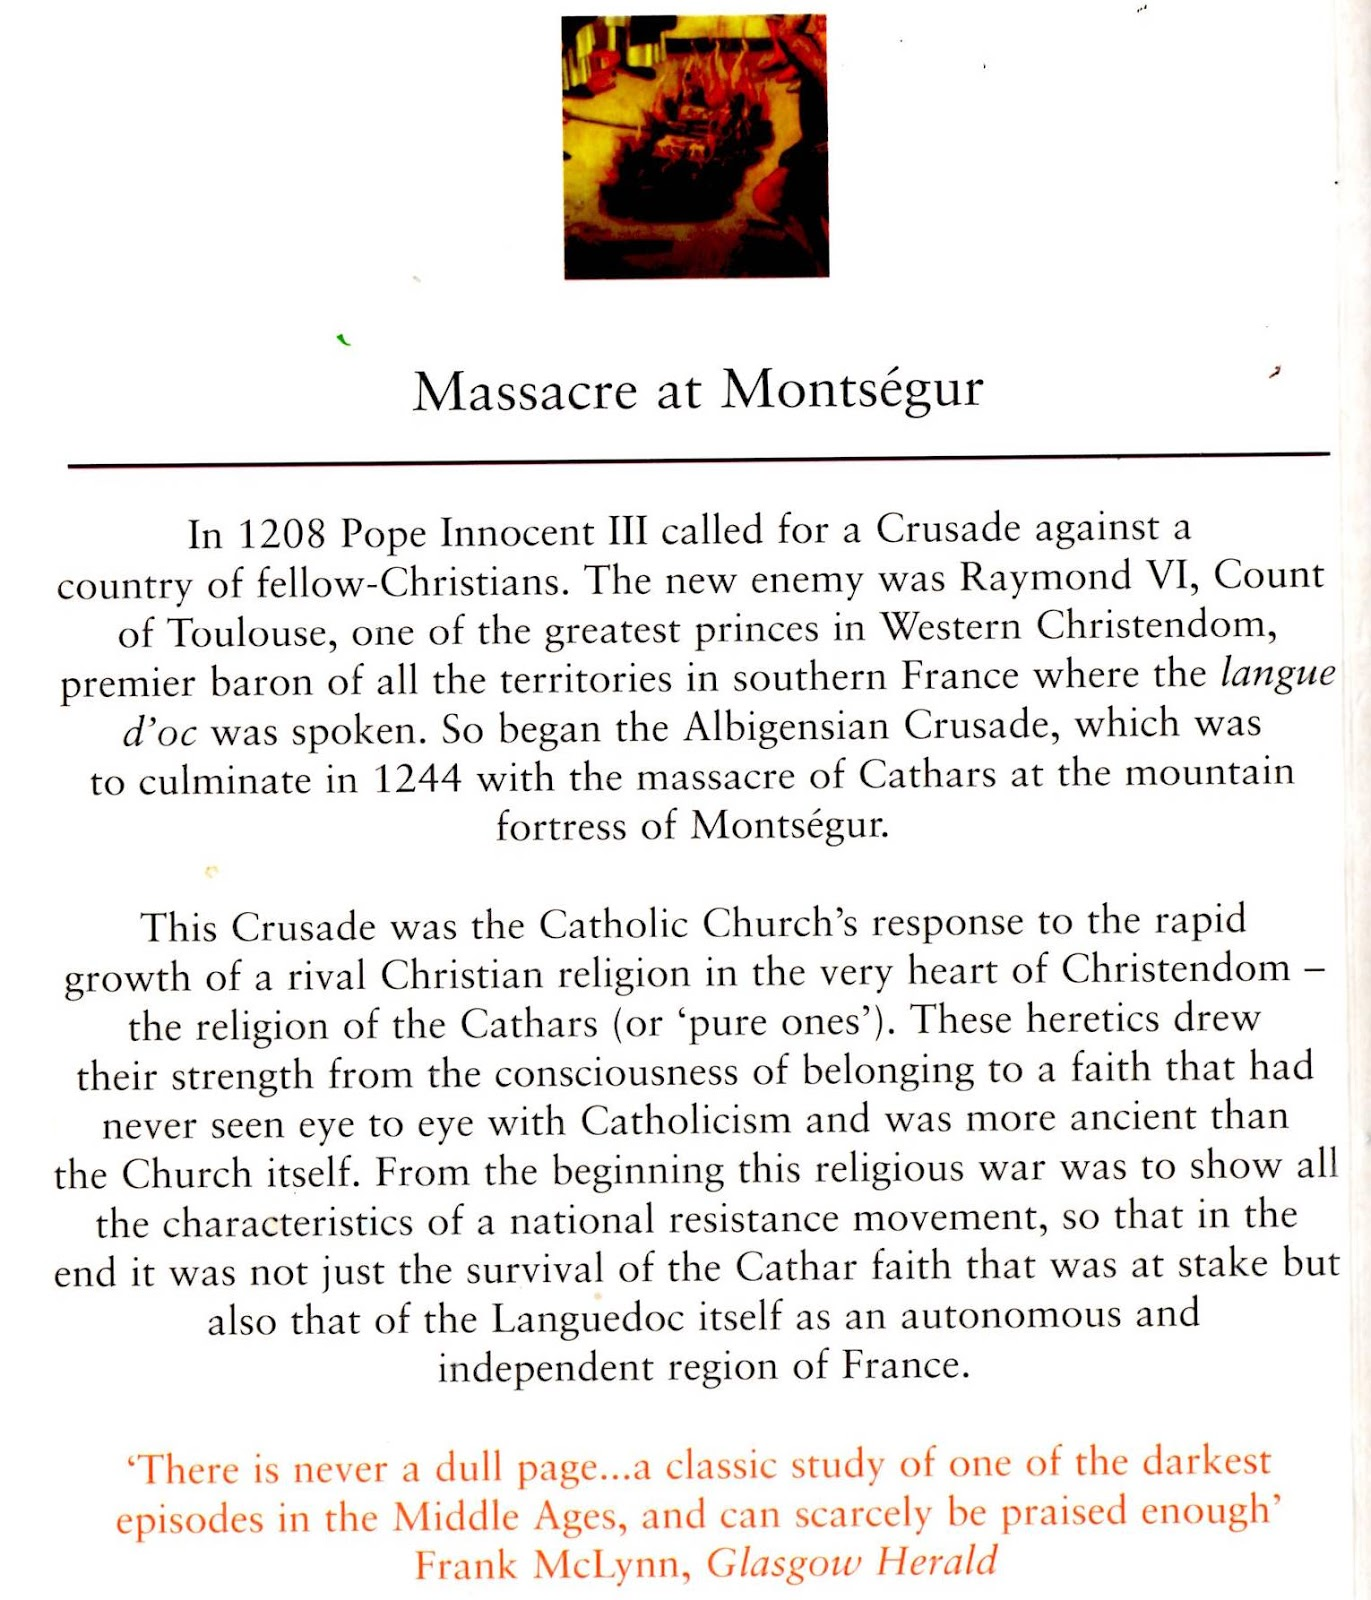 were the crusades just wars essay The crusades were a series of wars taking place roughly between 1095 and 1270 they were waged by christina men for the purpose of gaining back land they lost to the muslims and rescuing fellow christians it is estimated that nearly 20, 000 people were killed people are taught that the crusades.